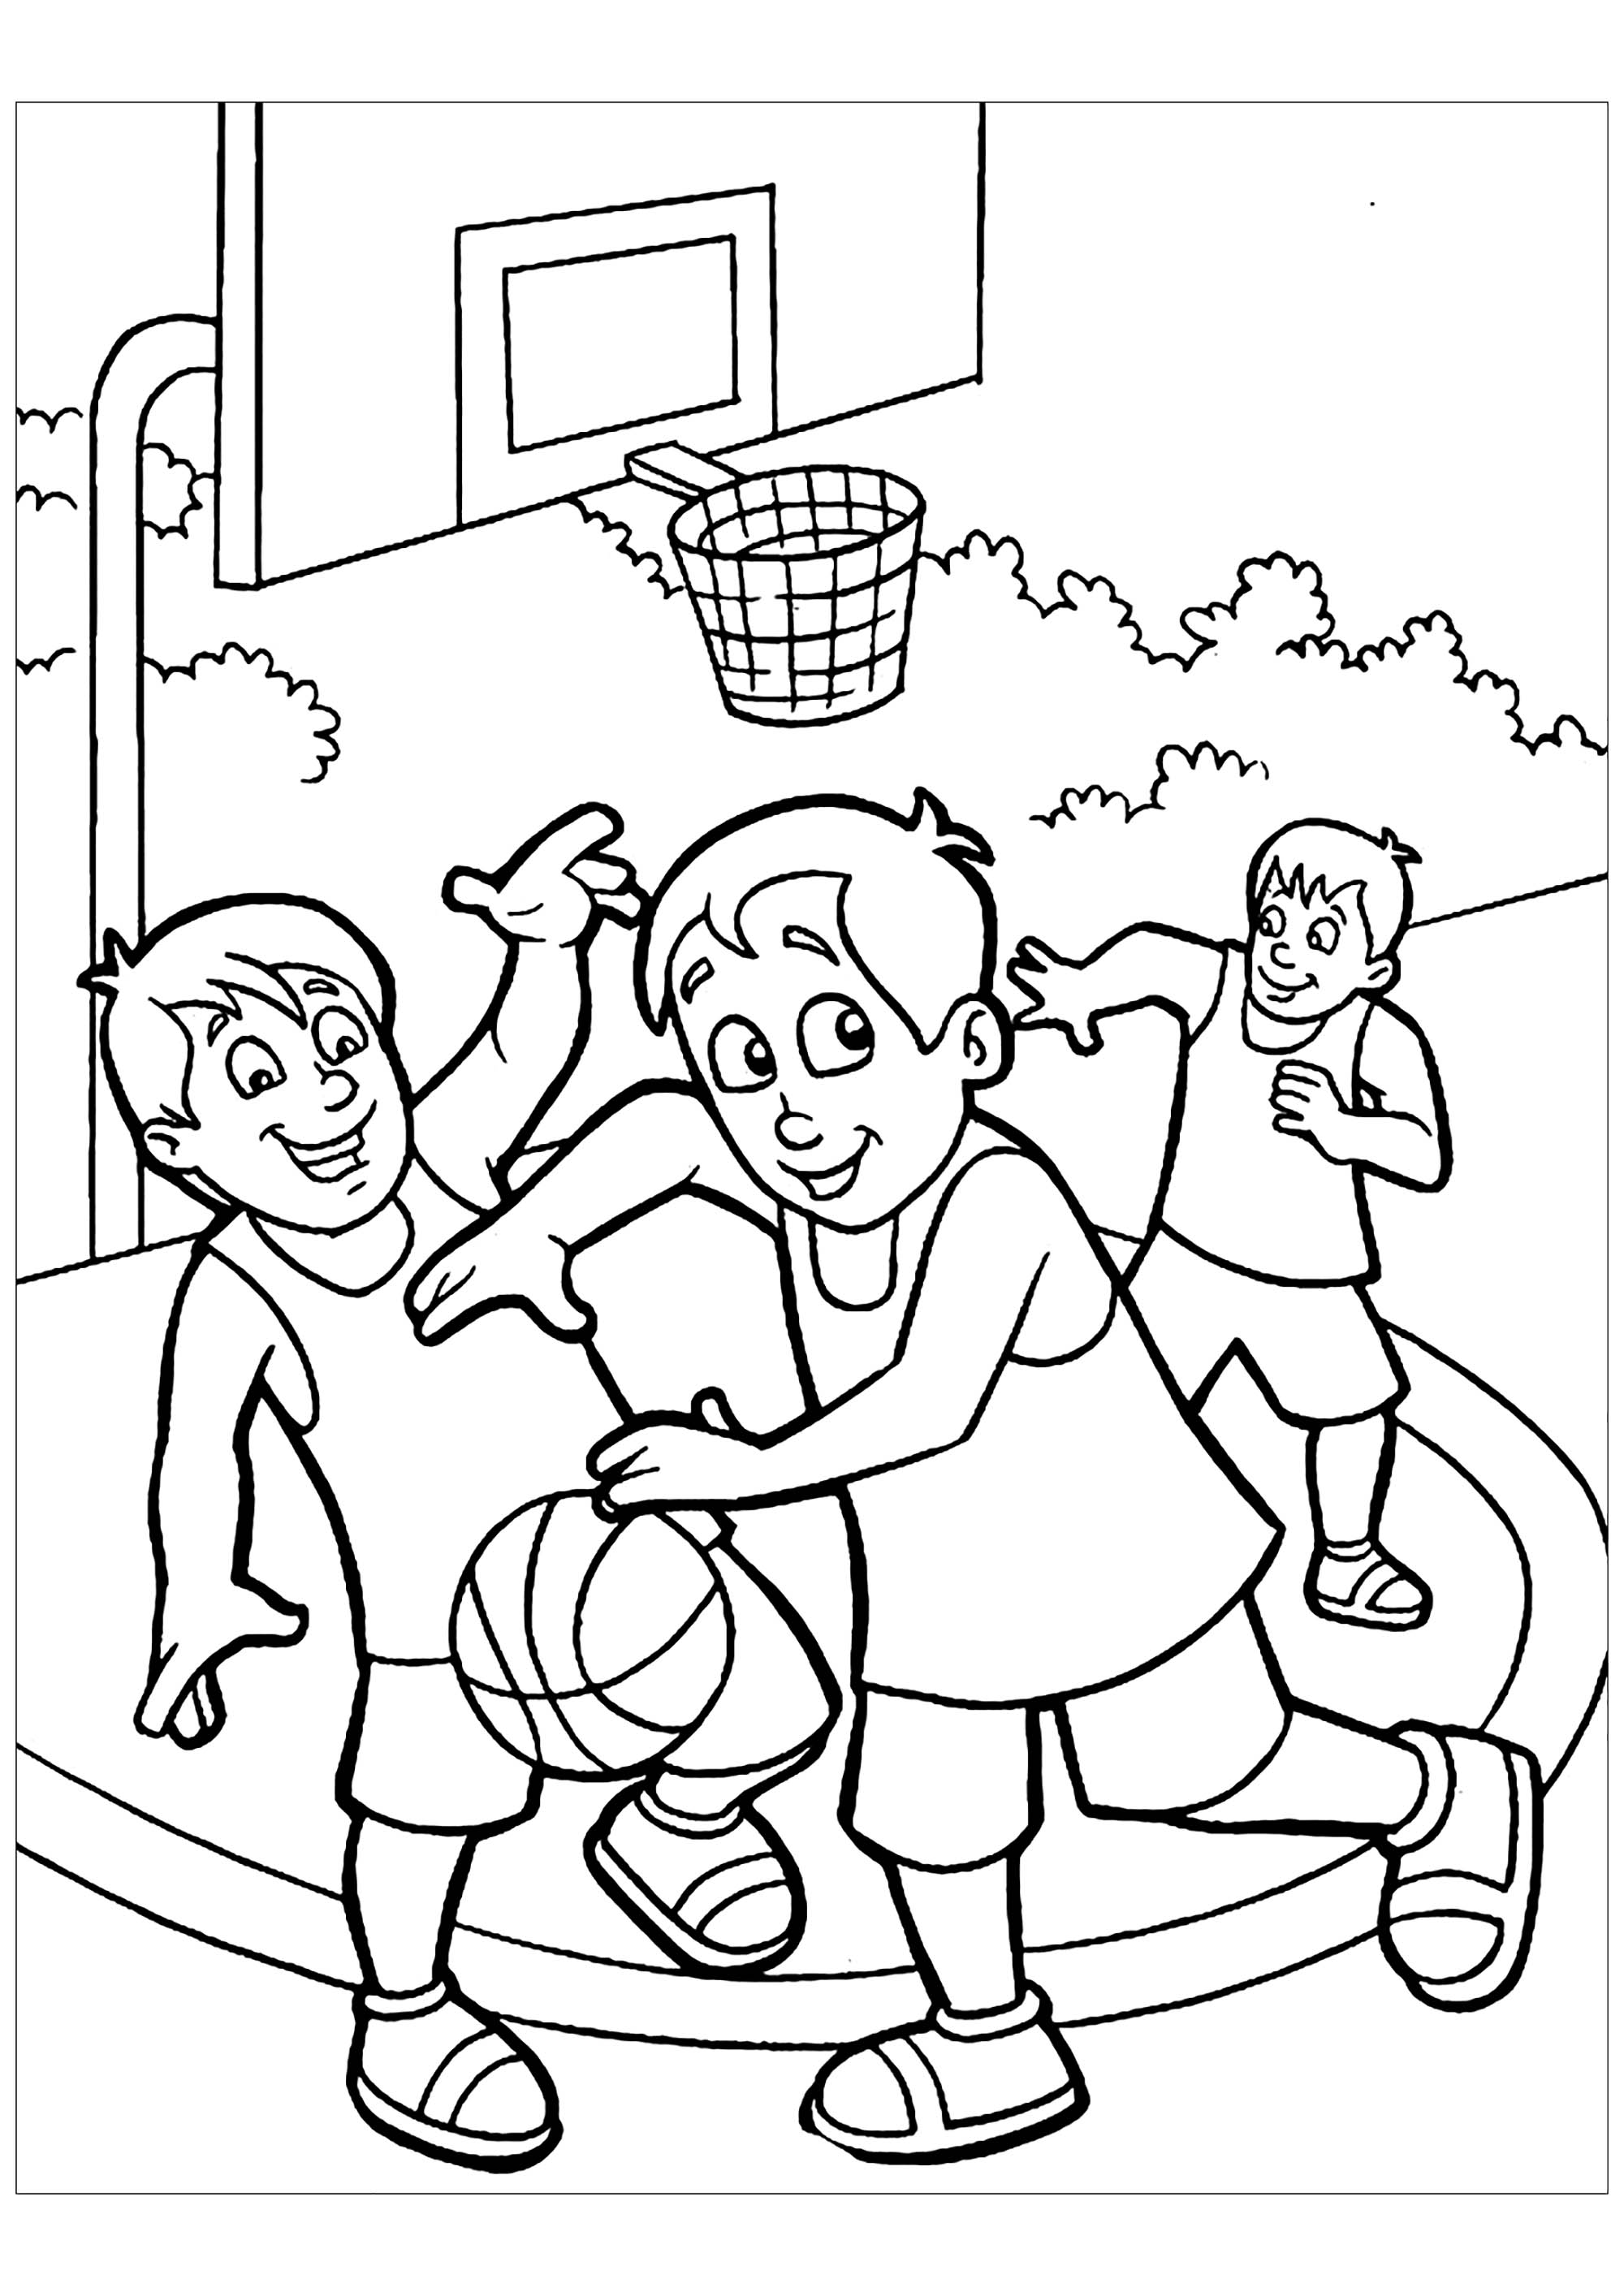 Children Playing Basketball Coloring Page